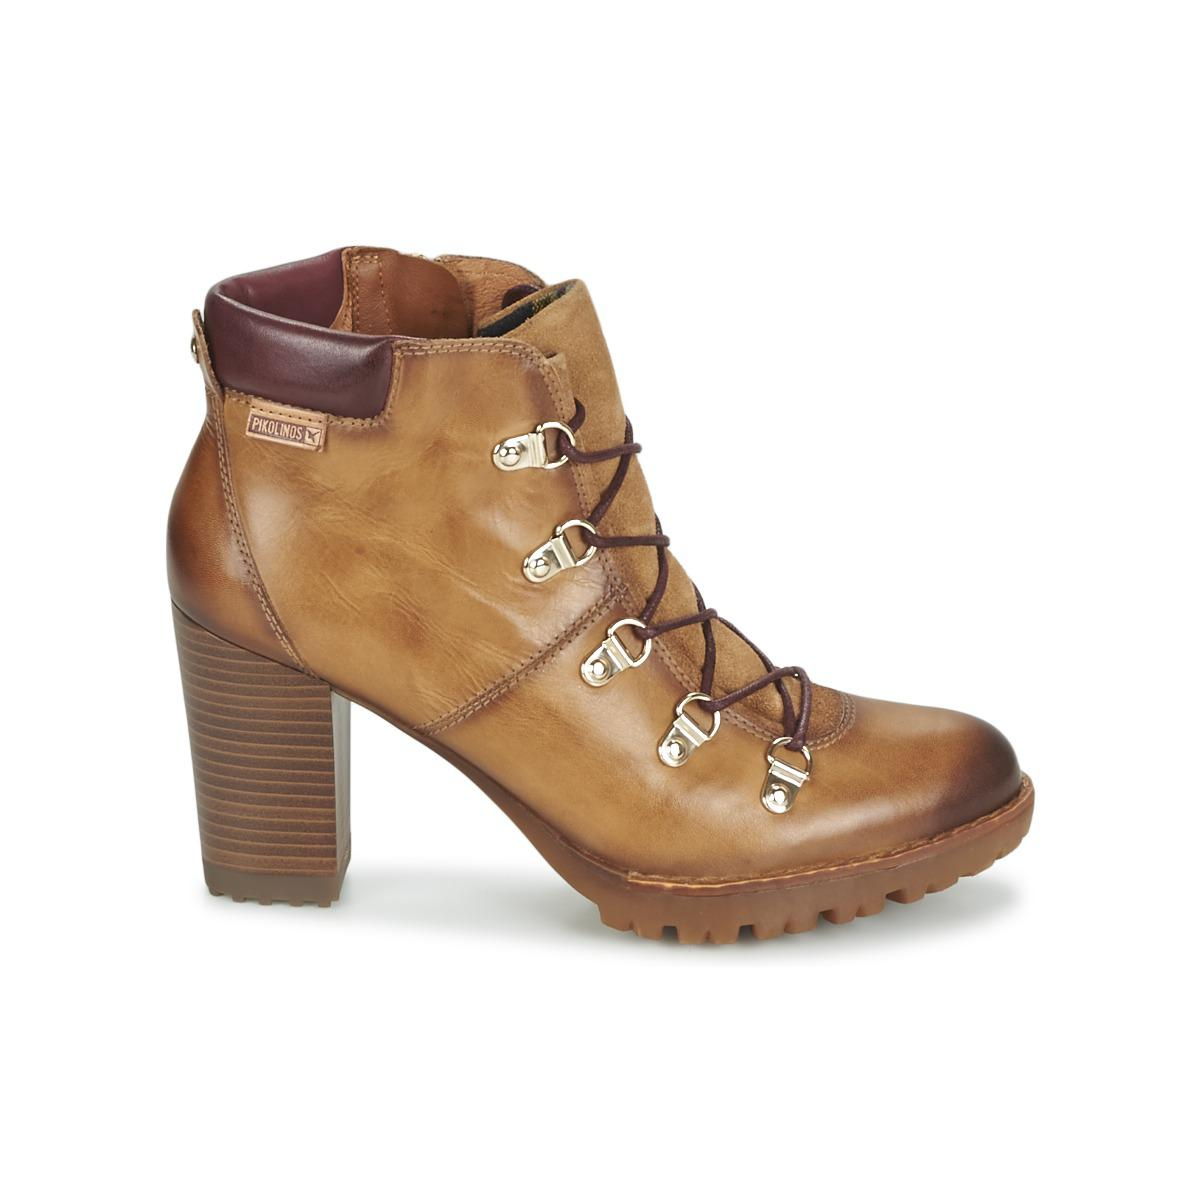 Pikolinos Leather Connelly W3e Low Ankle Boots in Brown